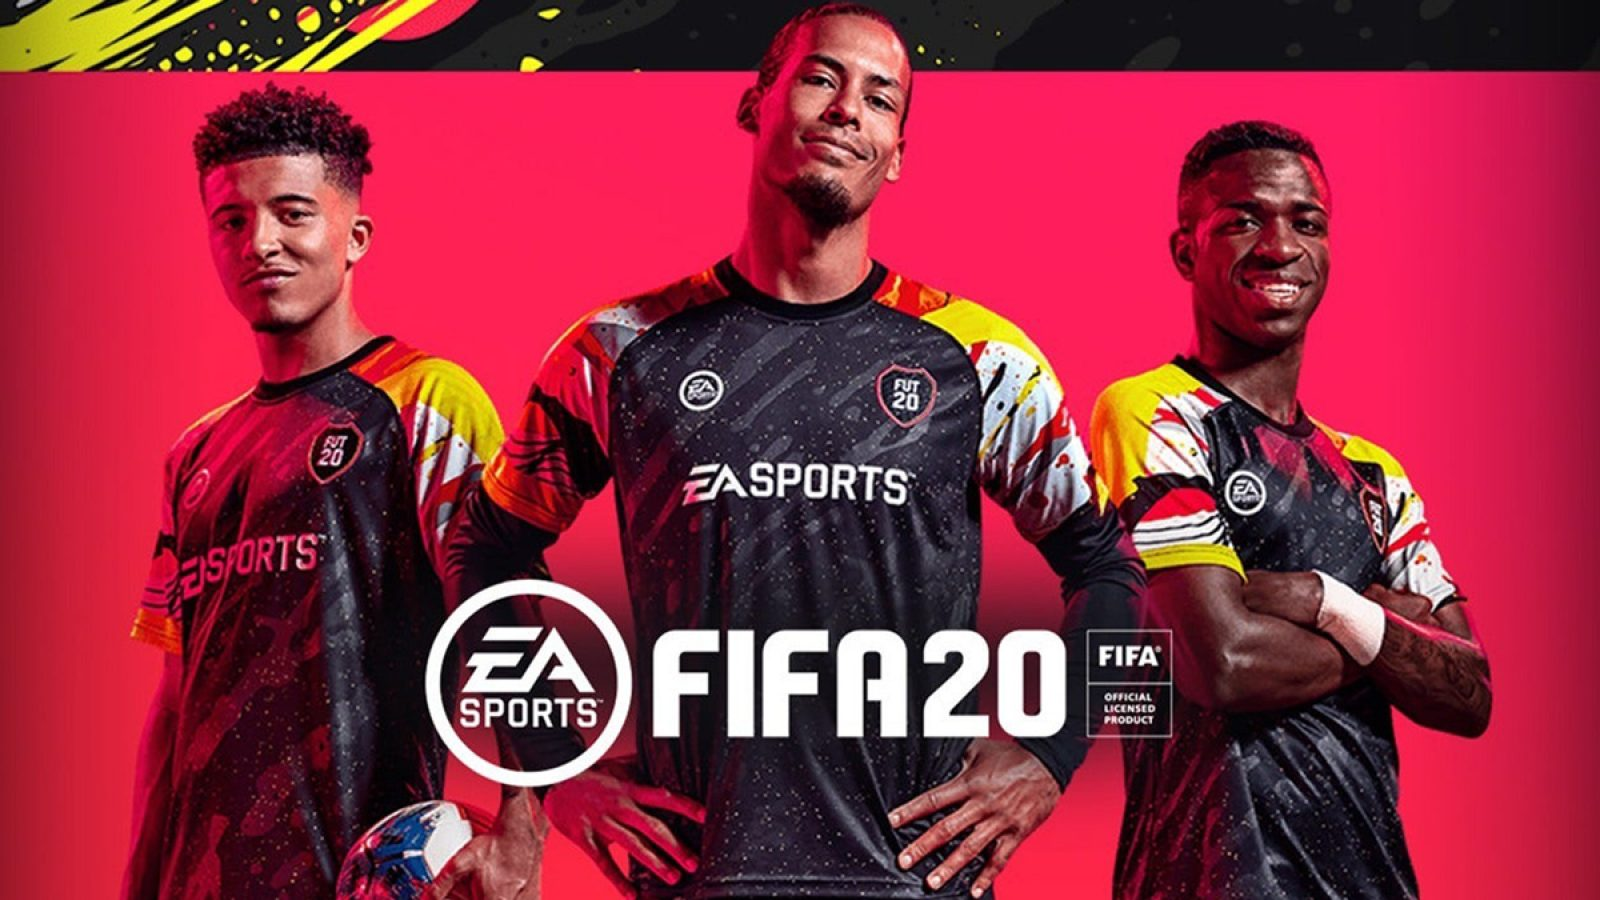 FIFA 20 Free Download SPECIAL Vote For Your Favorite Game